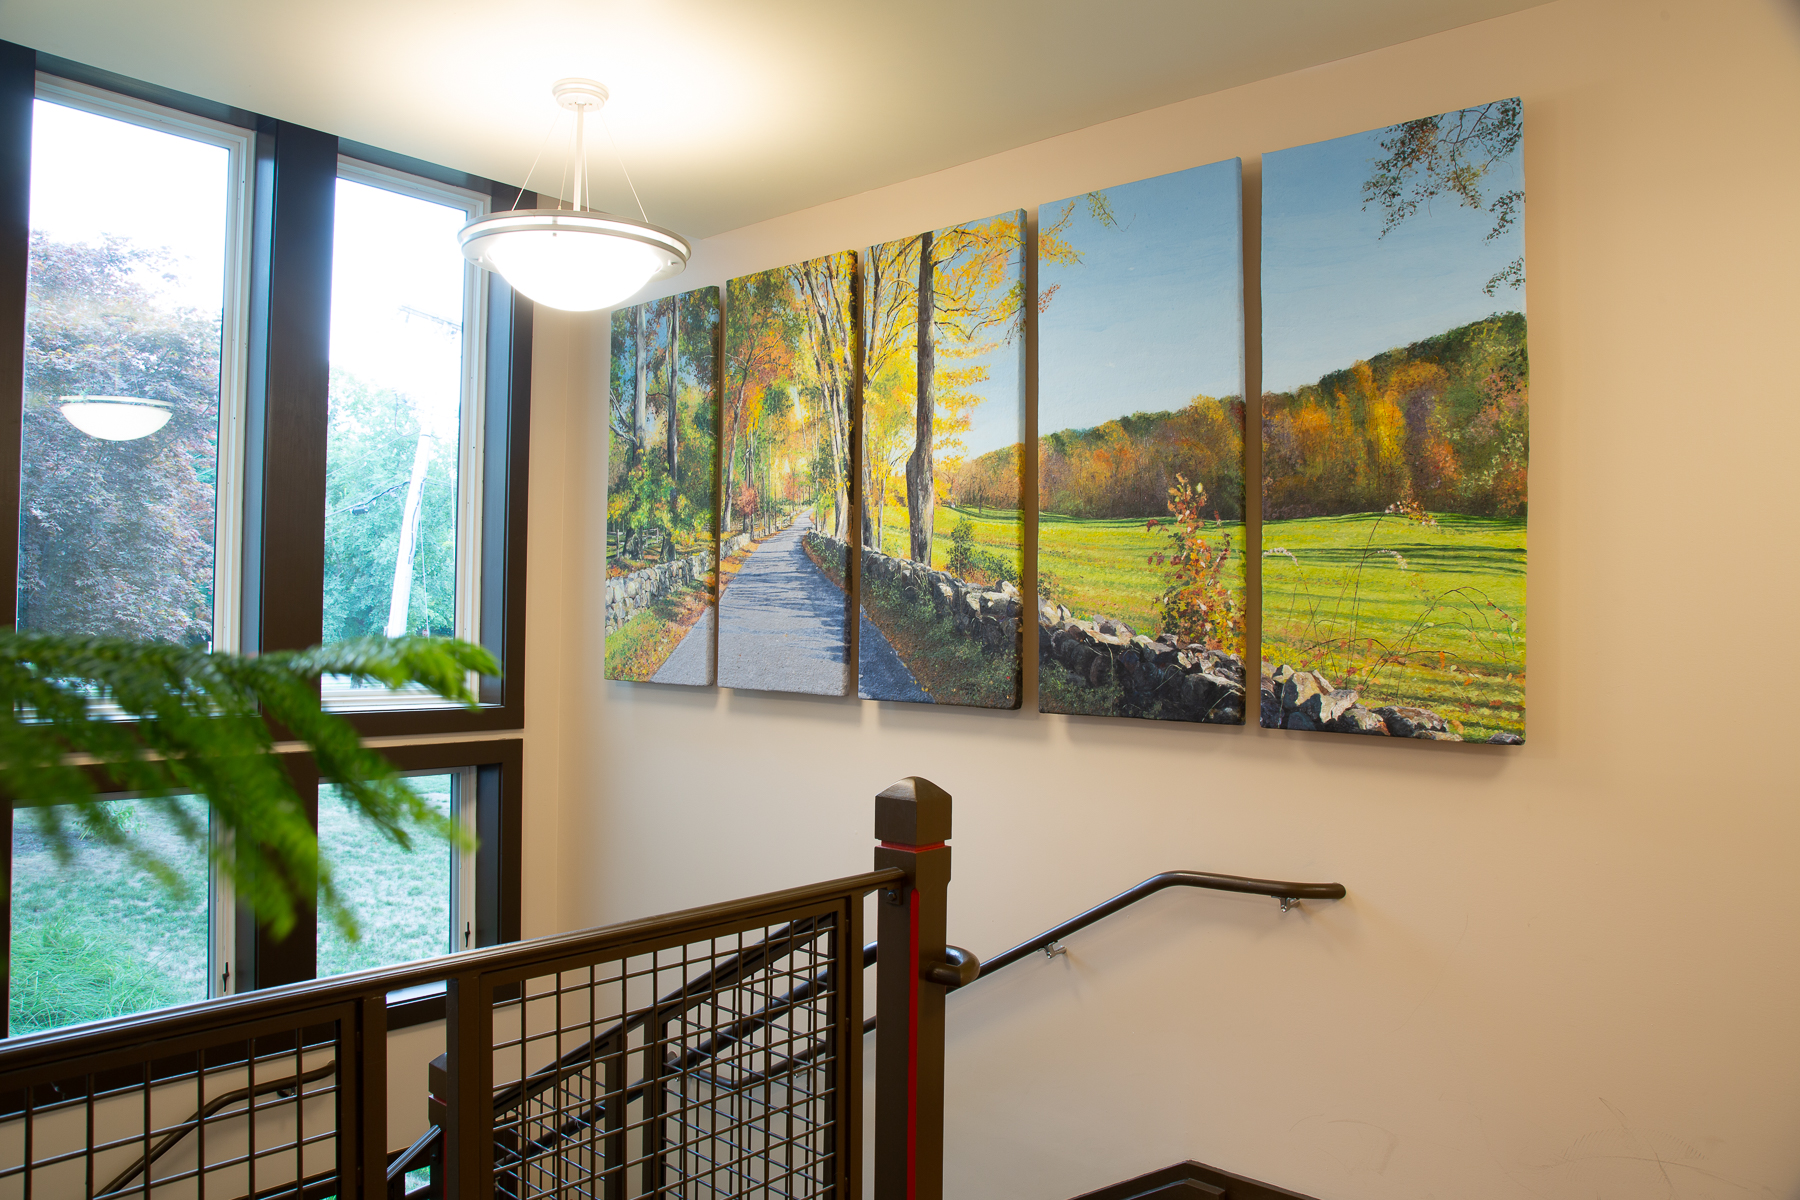 Adding Biophelia inspired art to office design ensures a soothing work environment.